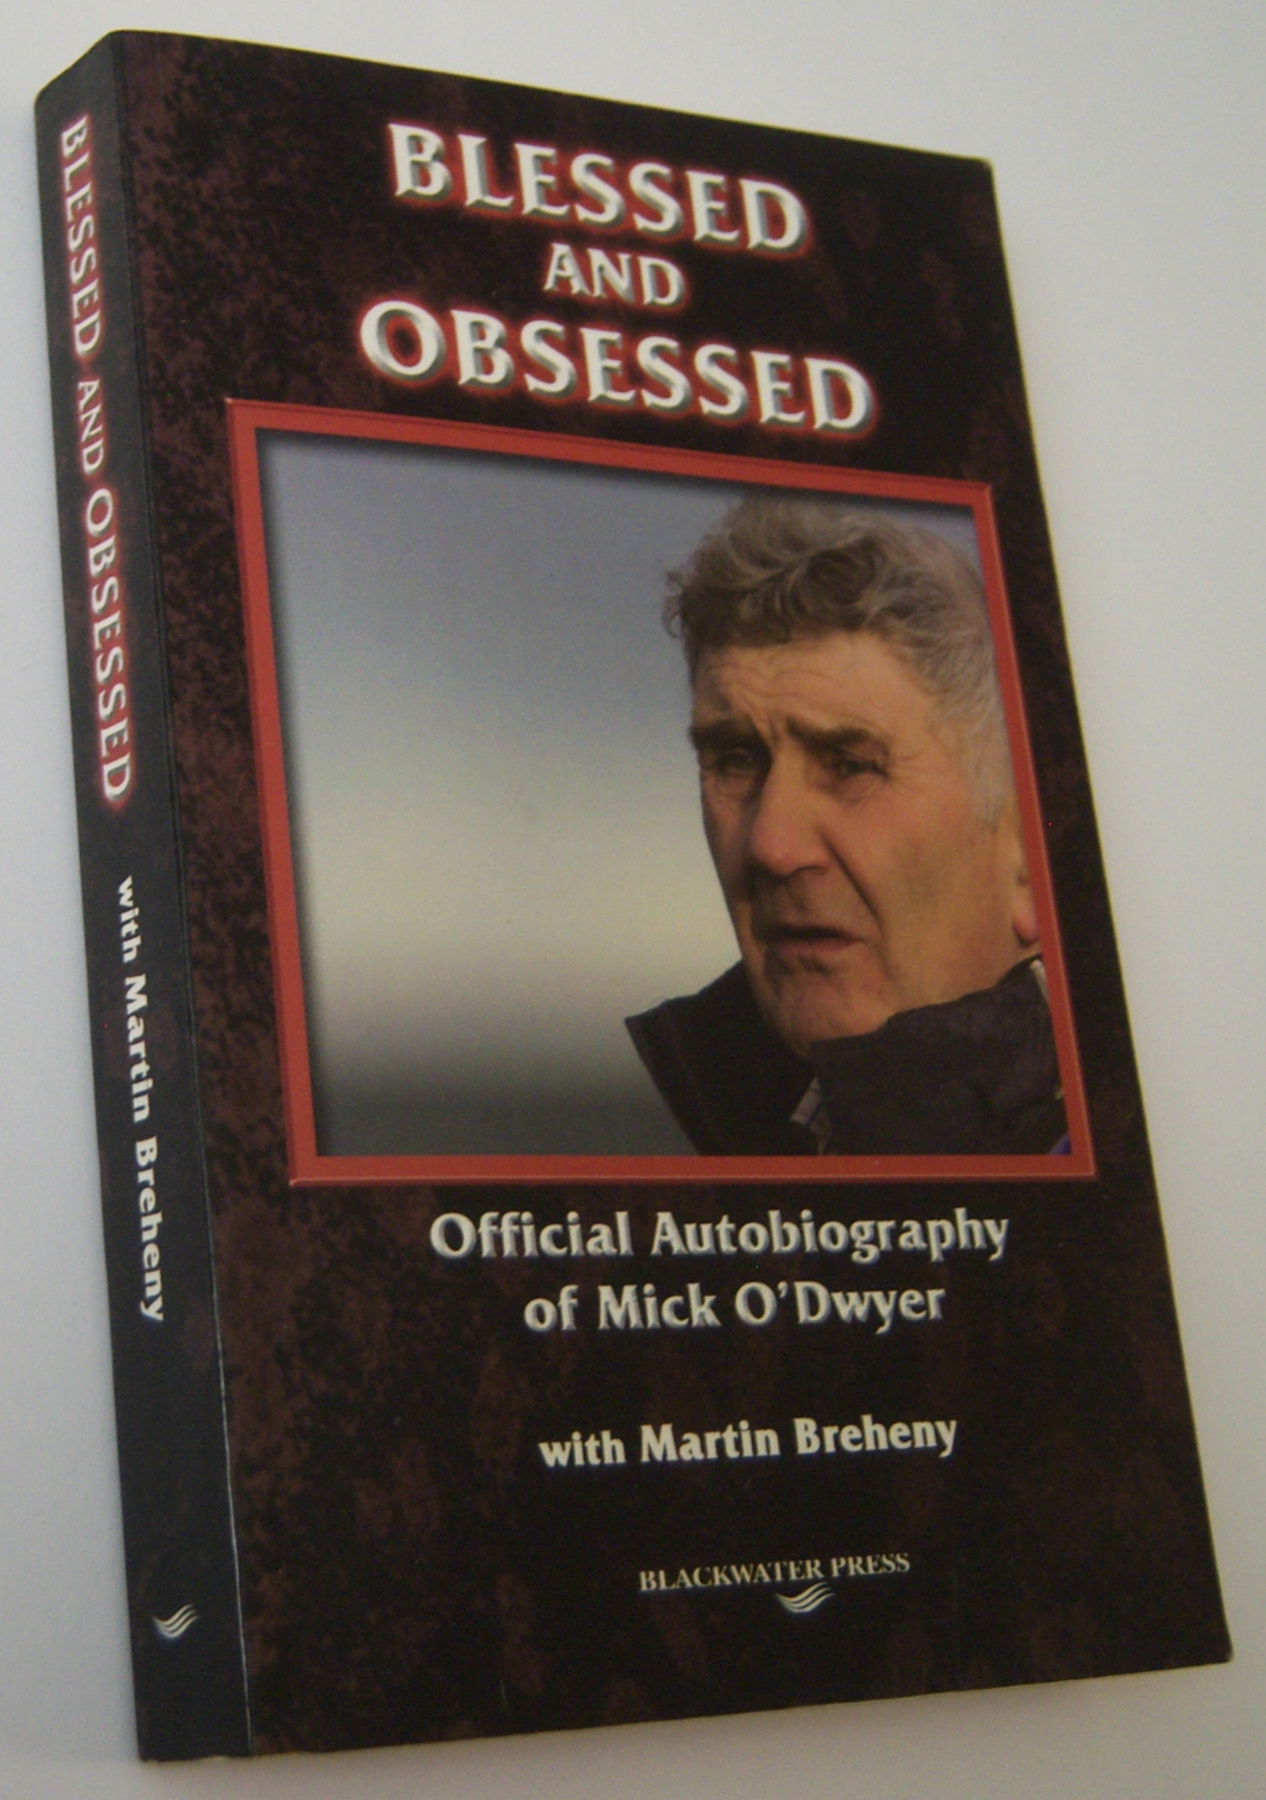 Image for BLESSED AND OBSESSED: Official Autobiography of Mick O'Dwyer